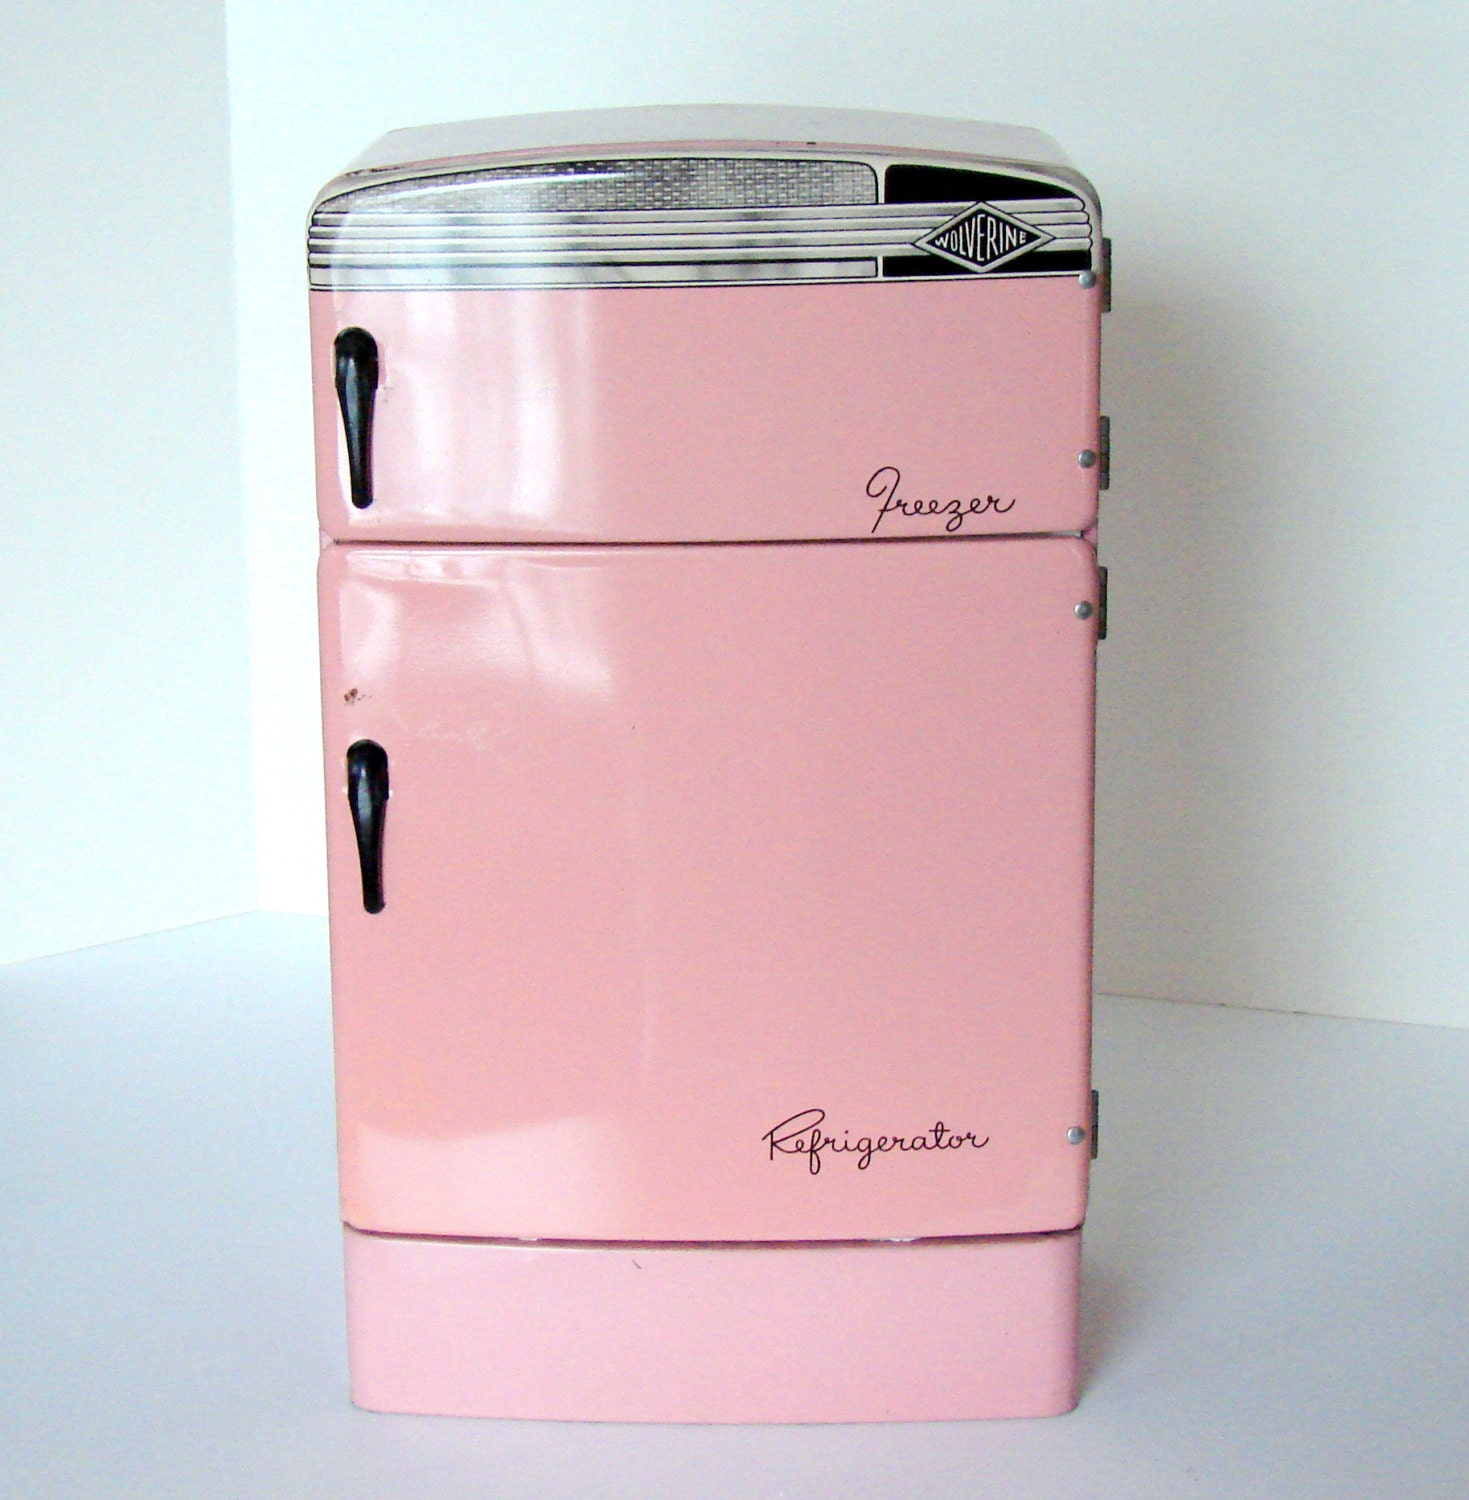 Wolverine Vintage Pink Tin Refrigerator by sassboxclassics on Etsy